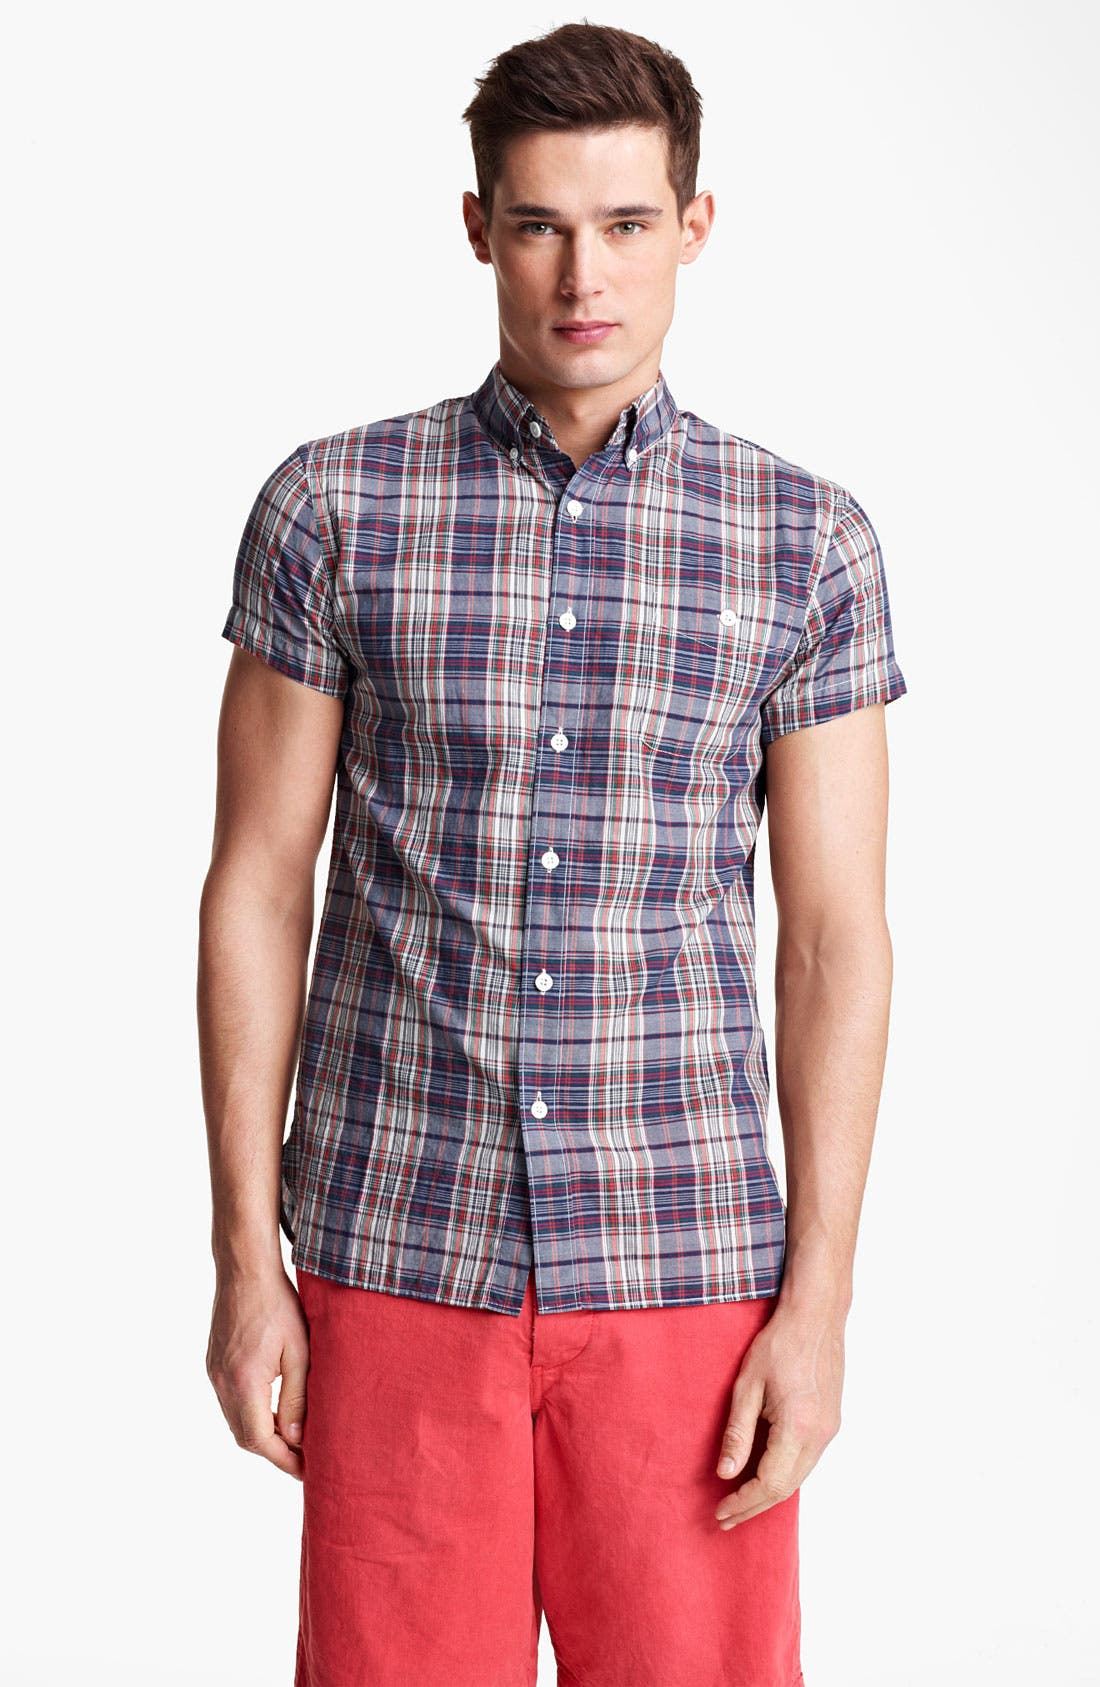 Main Image - Todd Snyder Plaid Shirt